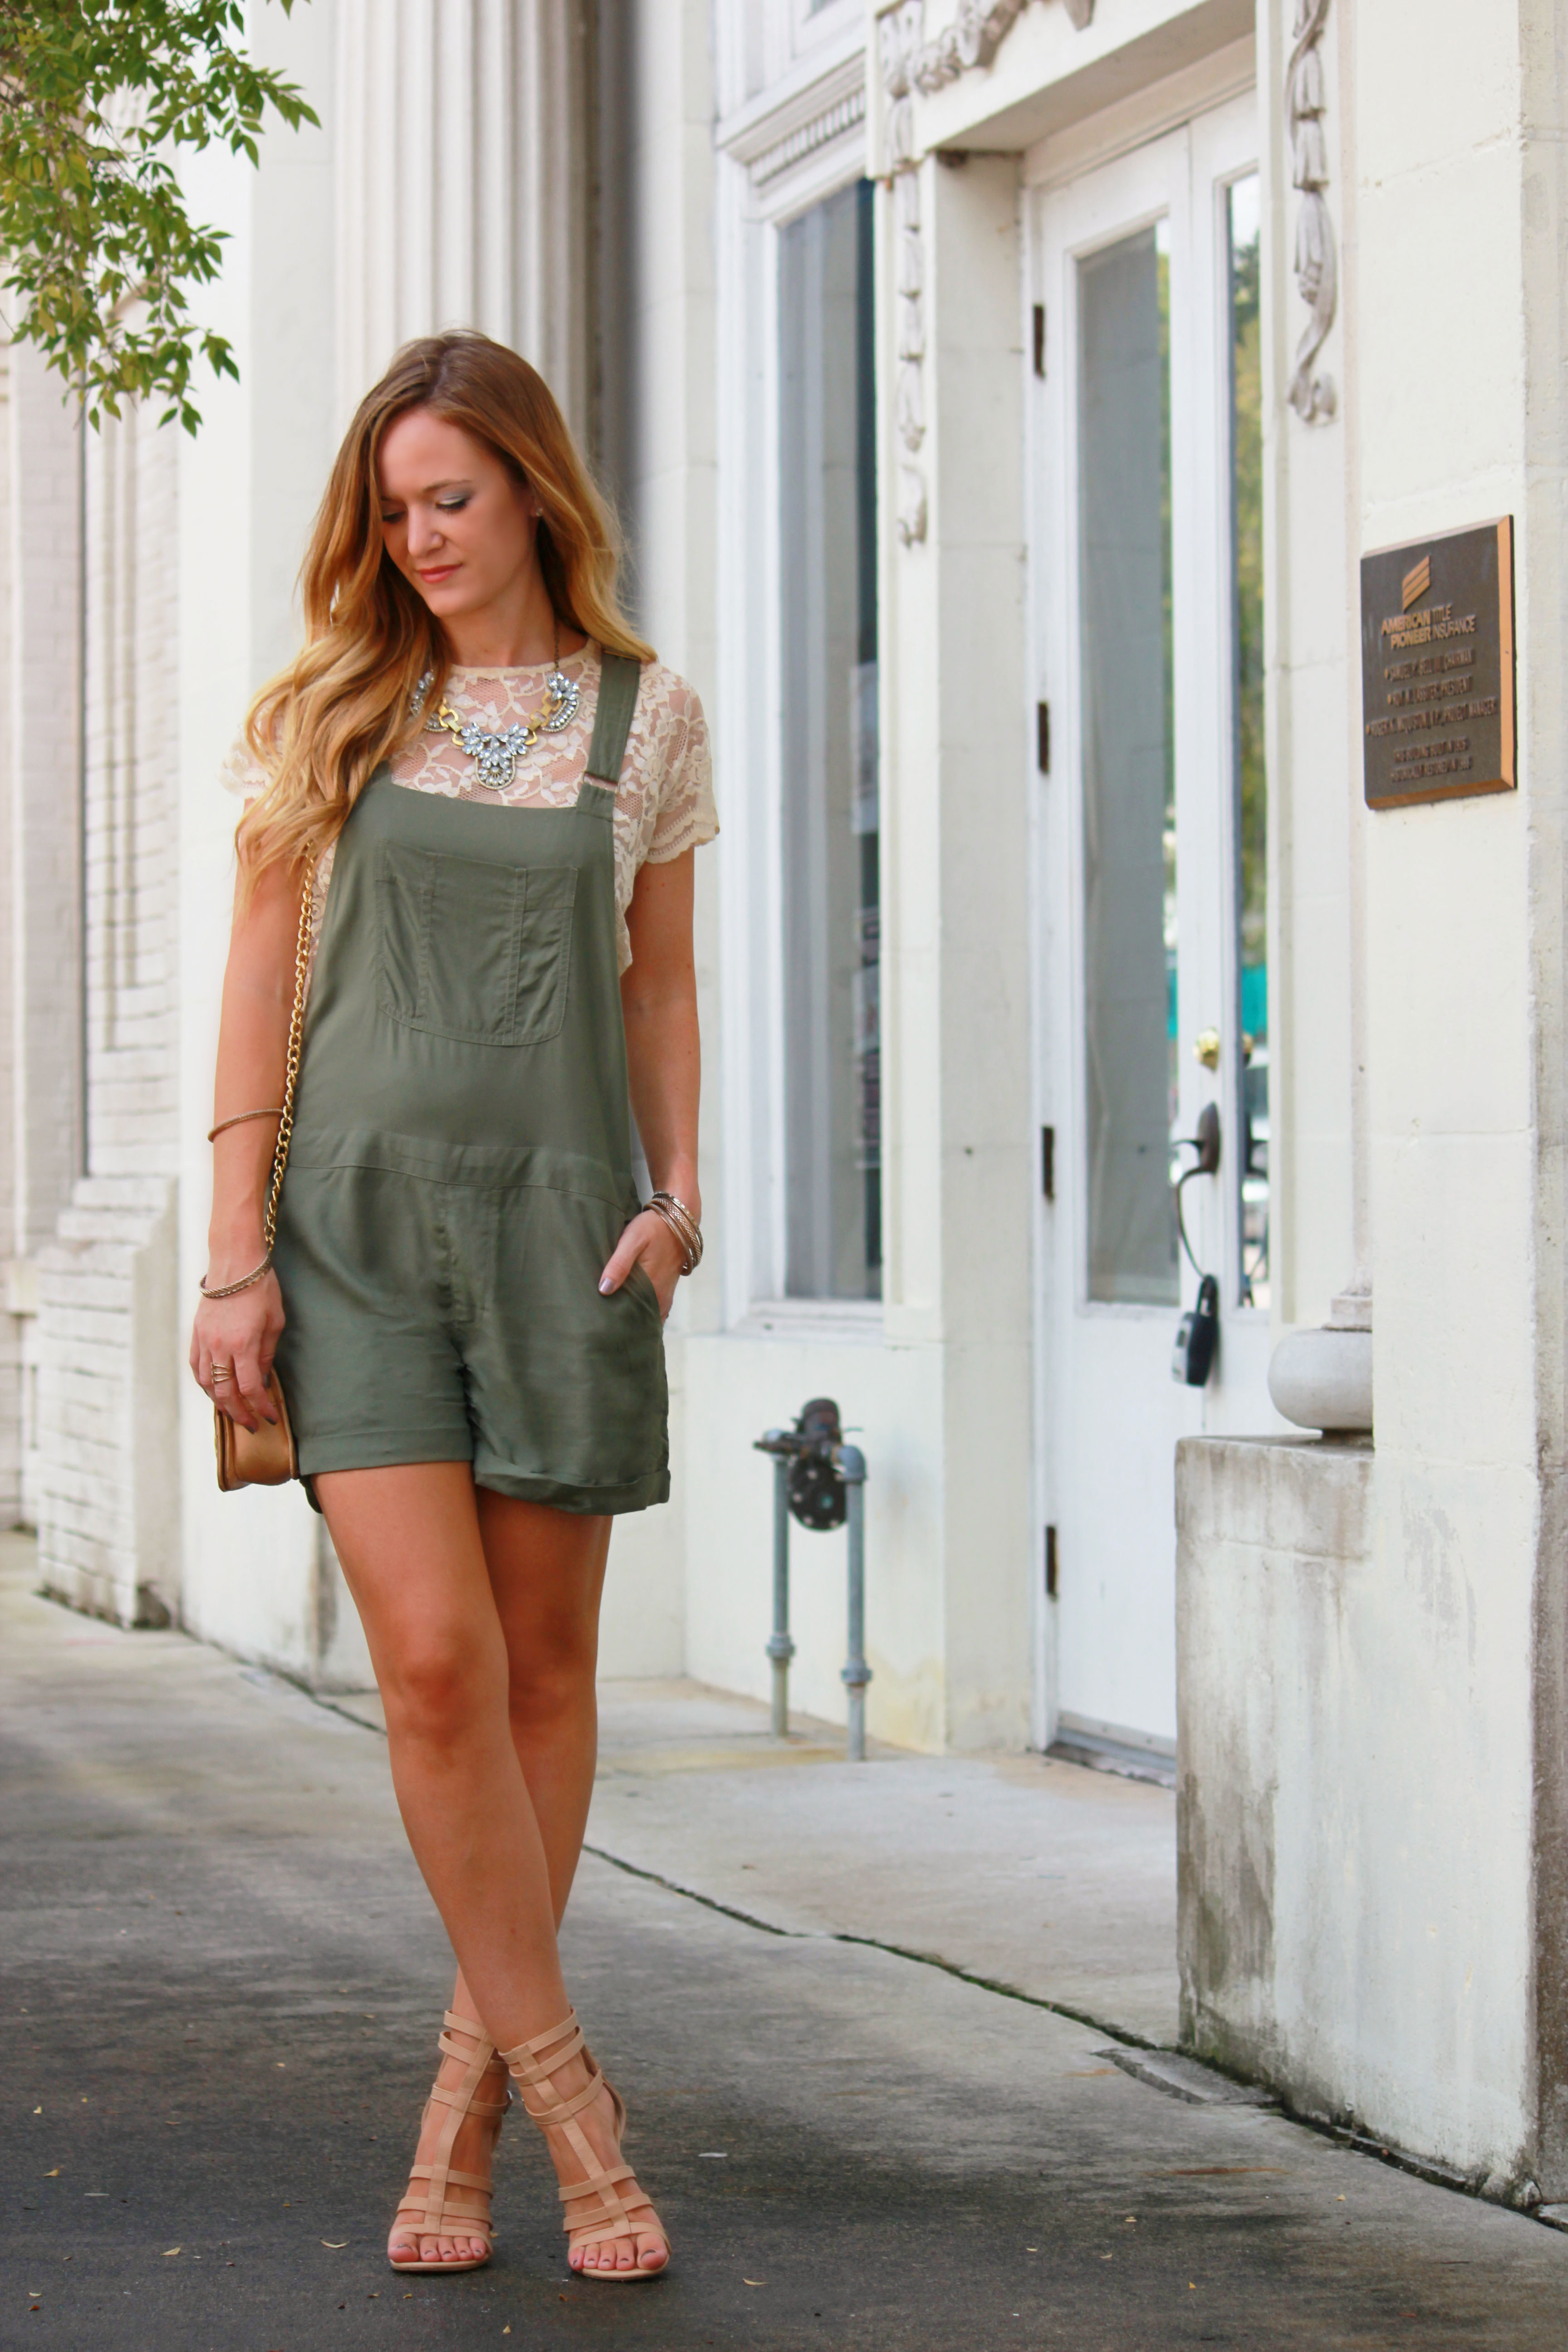 american eagle overalls, green overalls, fall transition outfit, badgley mischka bag, glaiator sandals, lace crop top, casual fall outfit